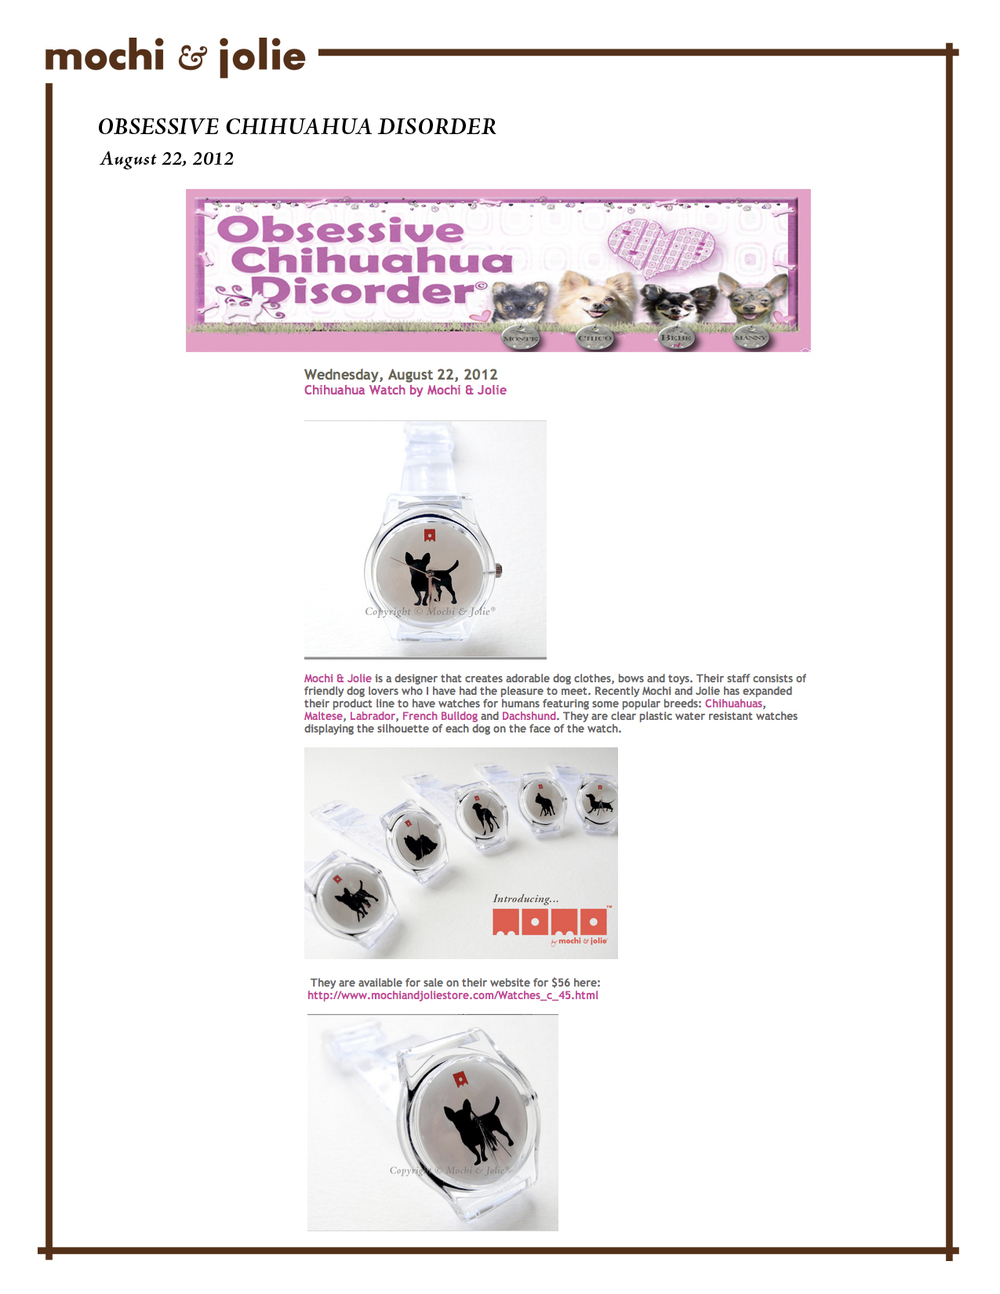 Obsessive Chihuahua Disorder (August 22, 2012)